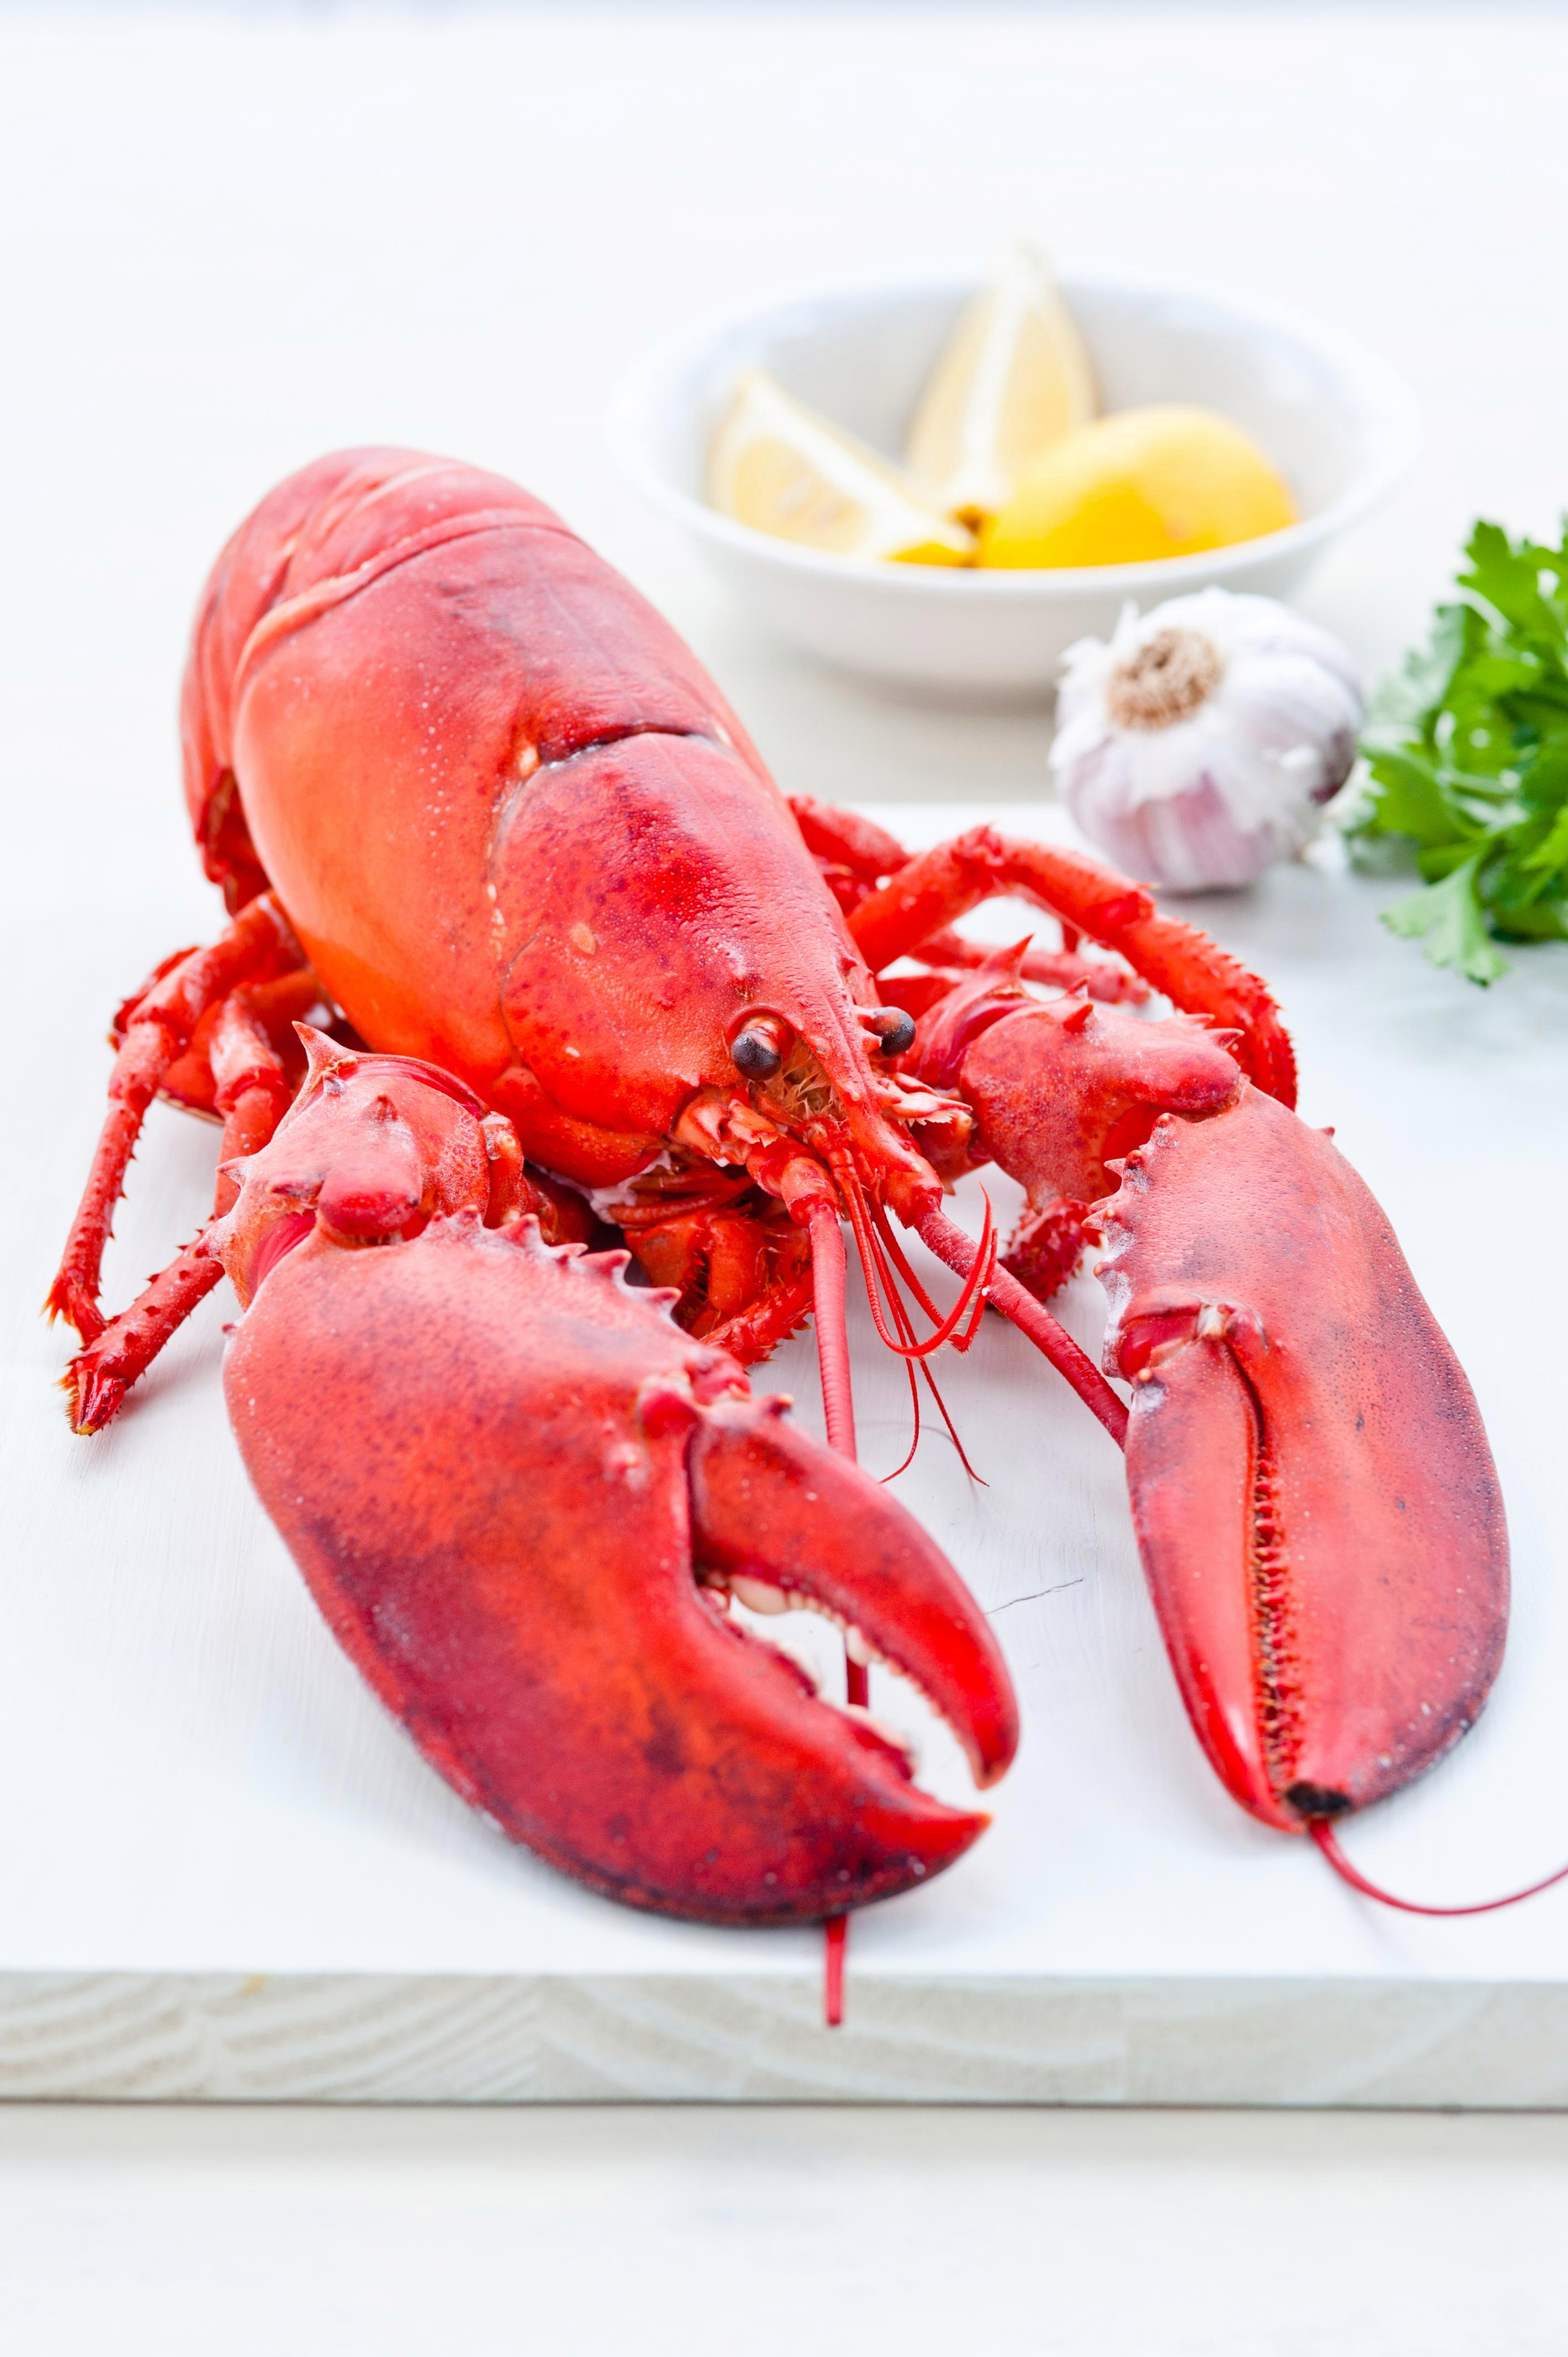 Switzerland makes boiling live lobsters illegal 'because they feel pain'